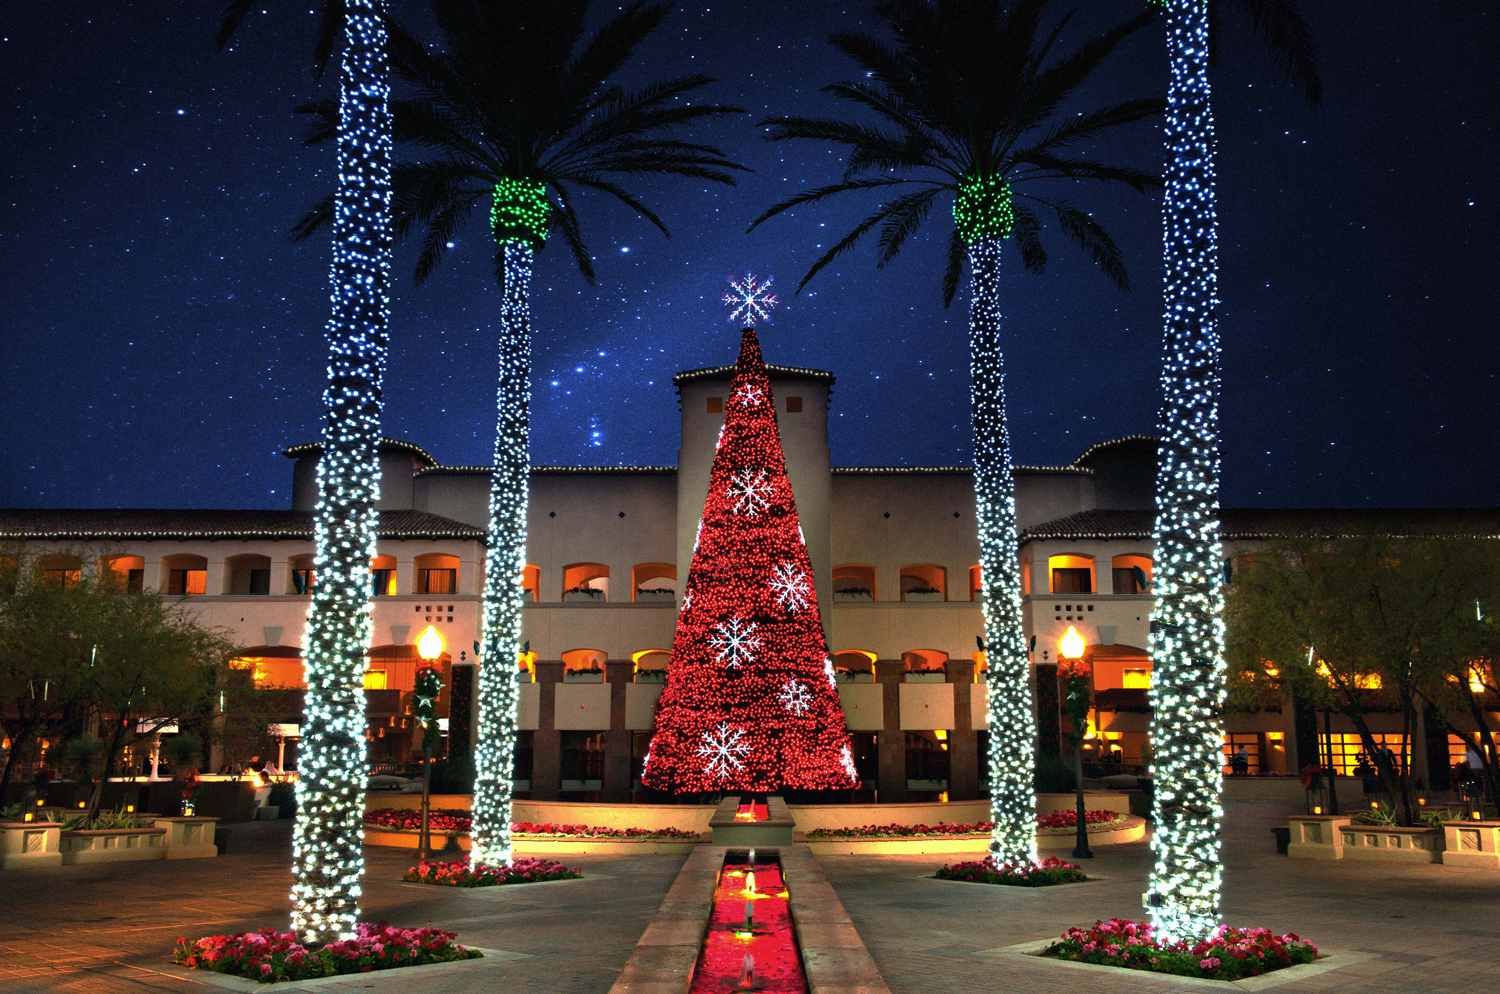 Phoenix Christmas Events 2019 Things to Do for Christmas in the Greater Phoenix Area